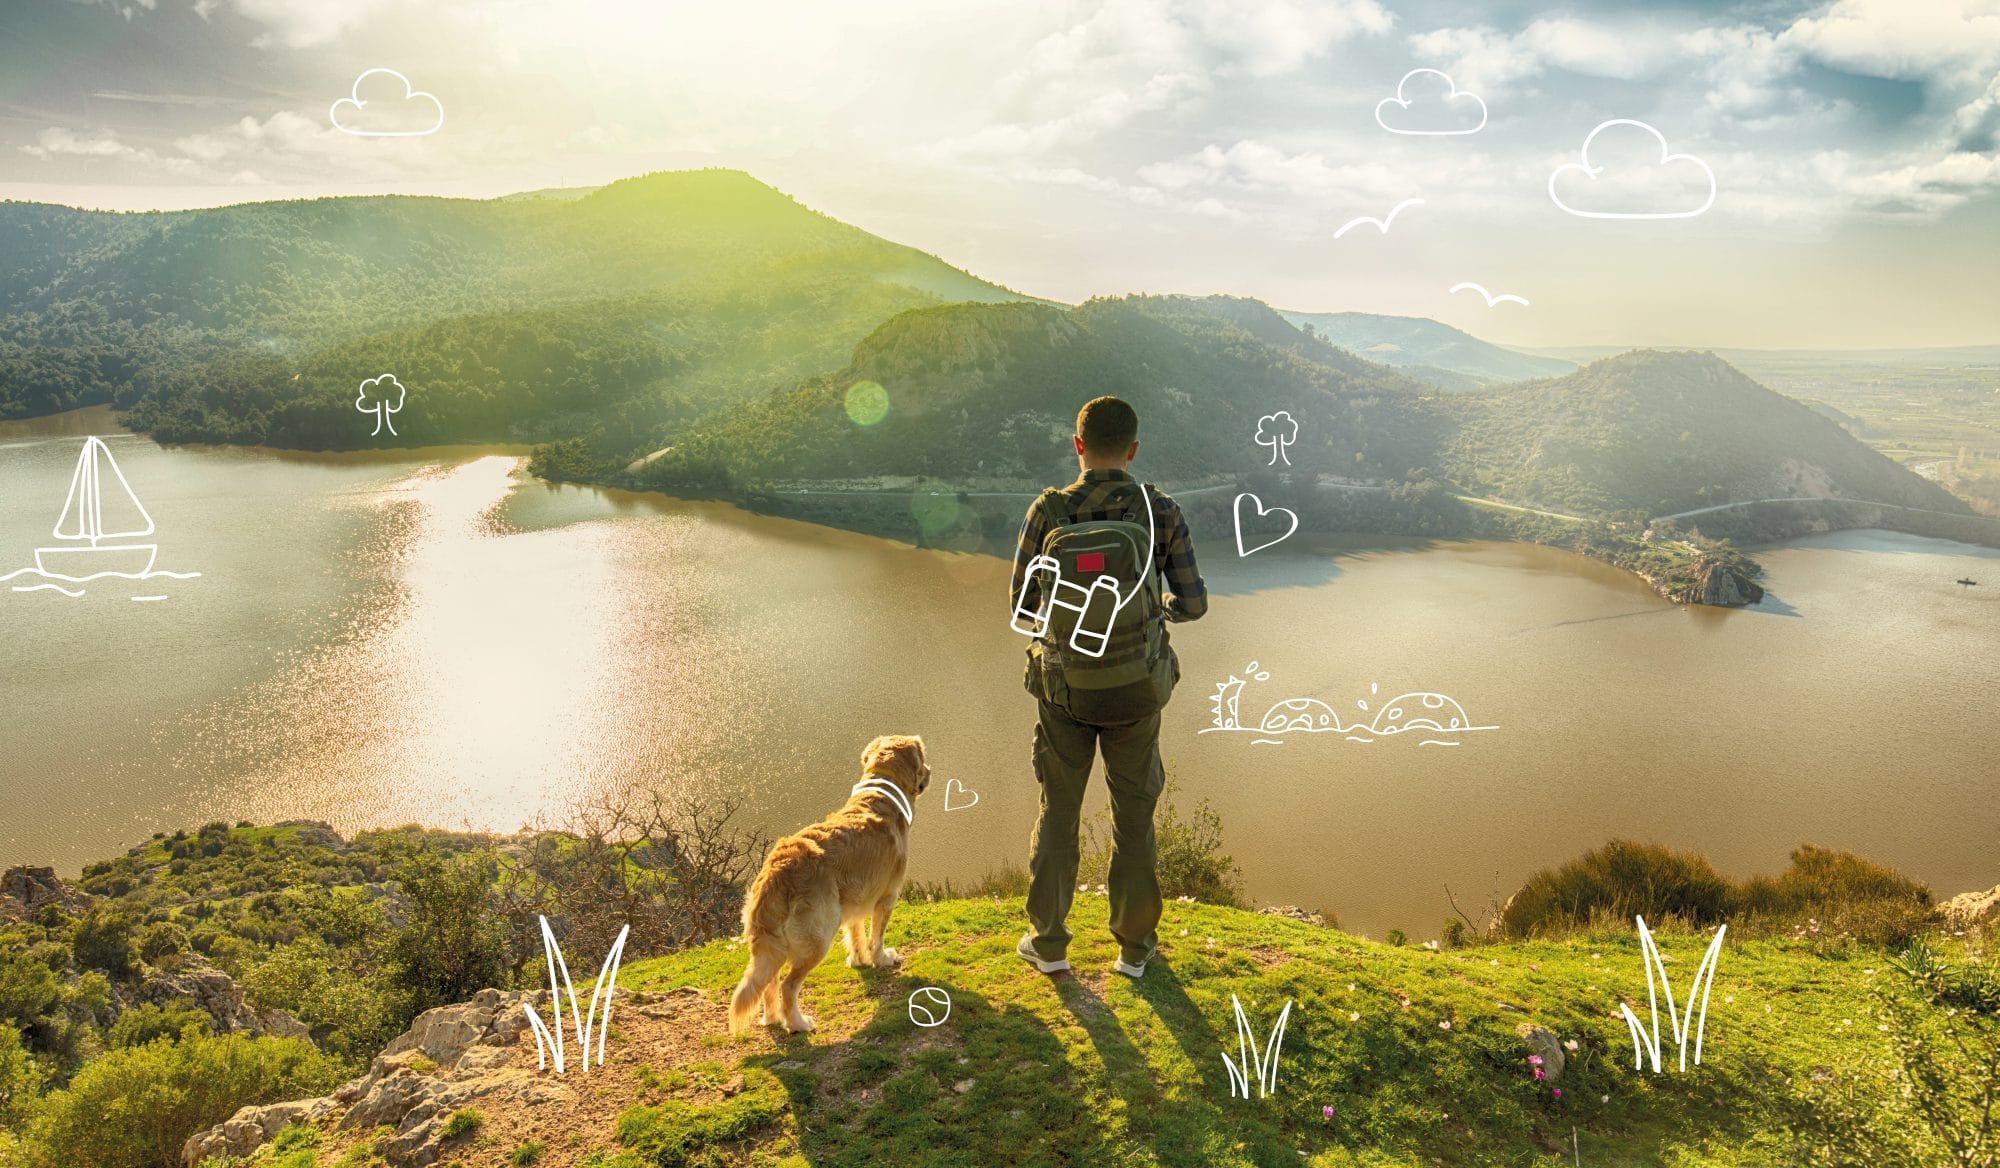 Top ten dog names 2019. A man and a dog enjoy a walk in the hills.